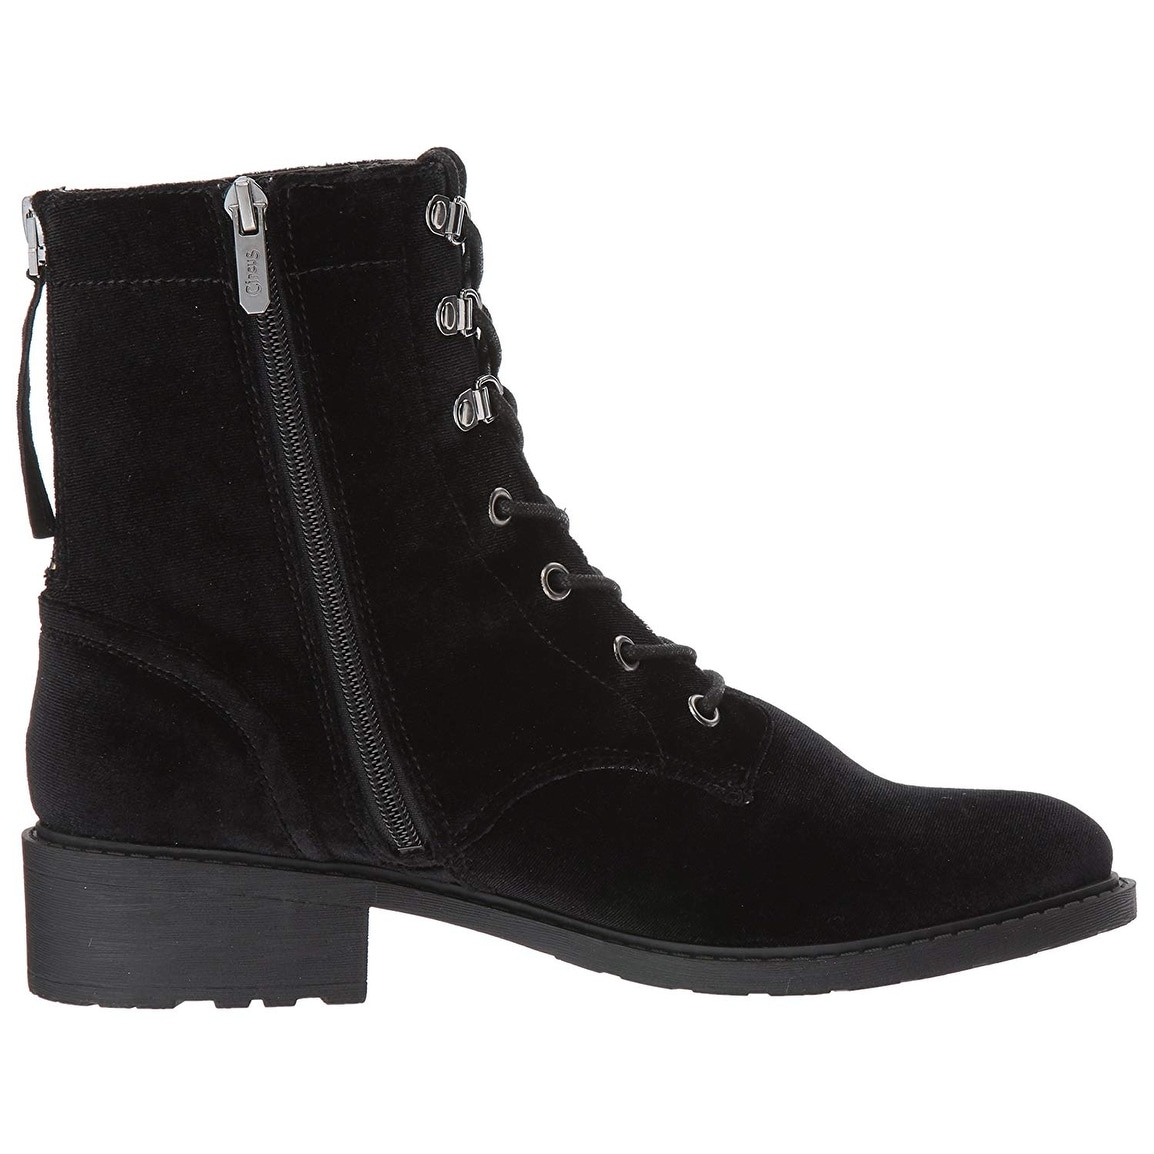 1950928dd Shop Circus by Sam Edelman Women s Dawson 2 Fashion Boot - Free Shipping On  Orders Over  45 - Overstock - 23125680